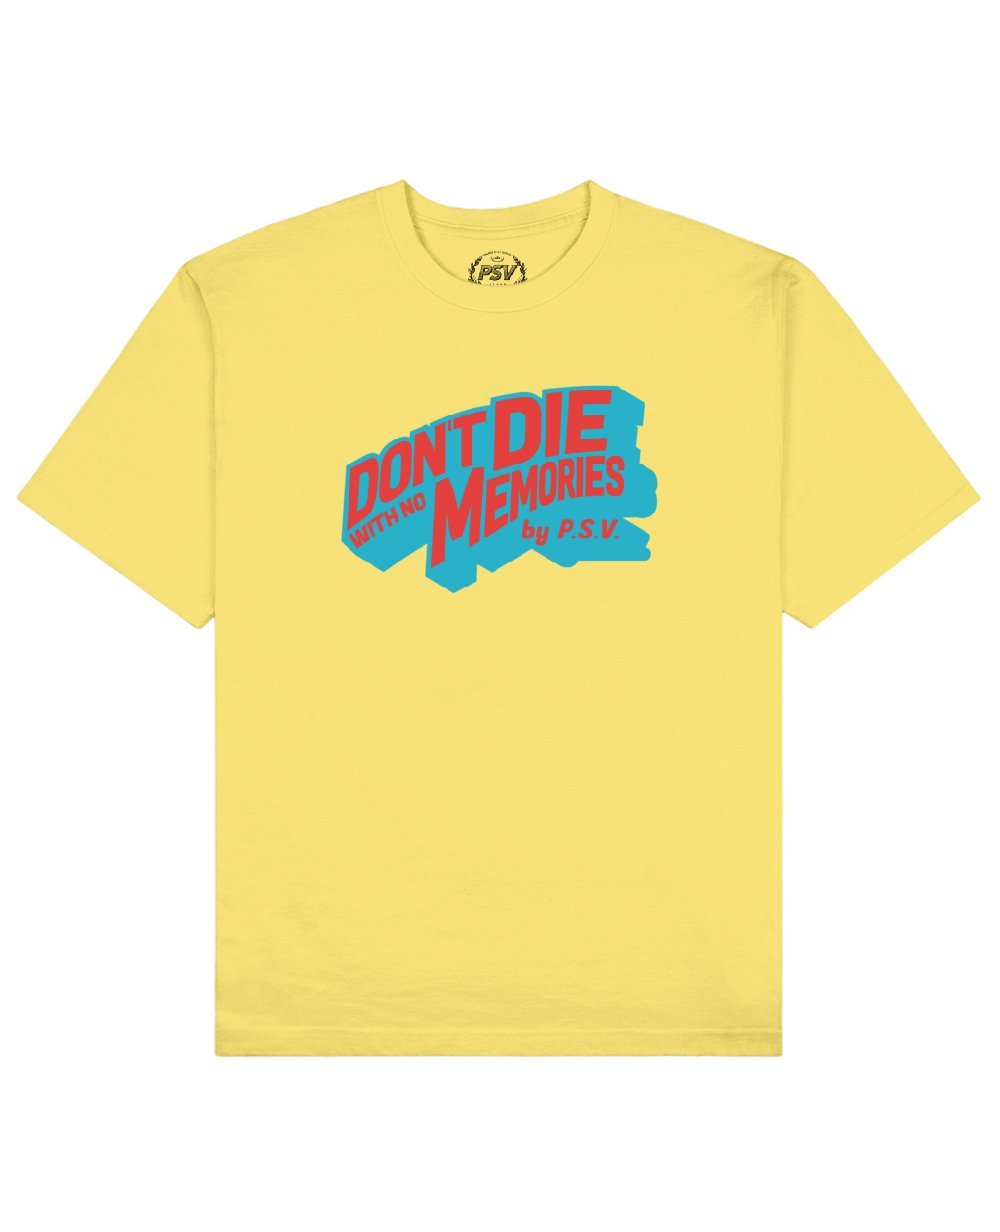 Phrase Quote Print T-Shirt in Light Yellow - T-Shirts - PSV - BRANMA